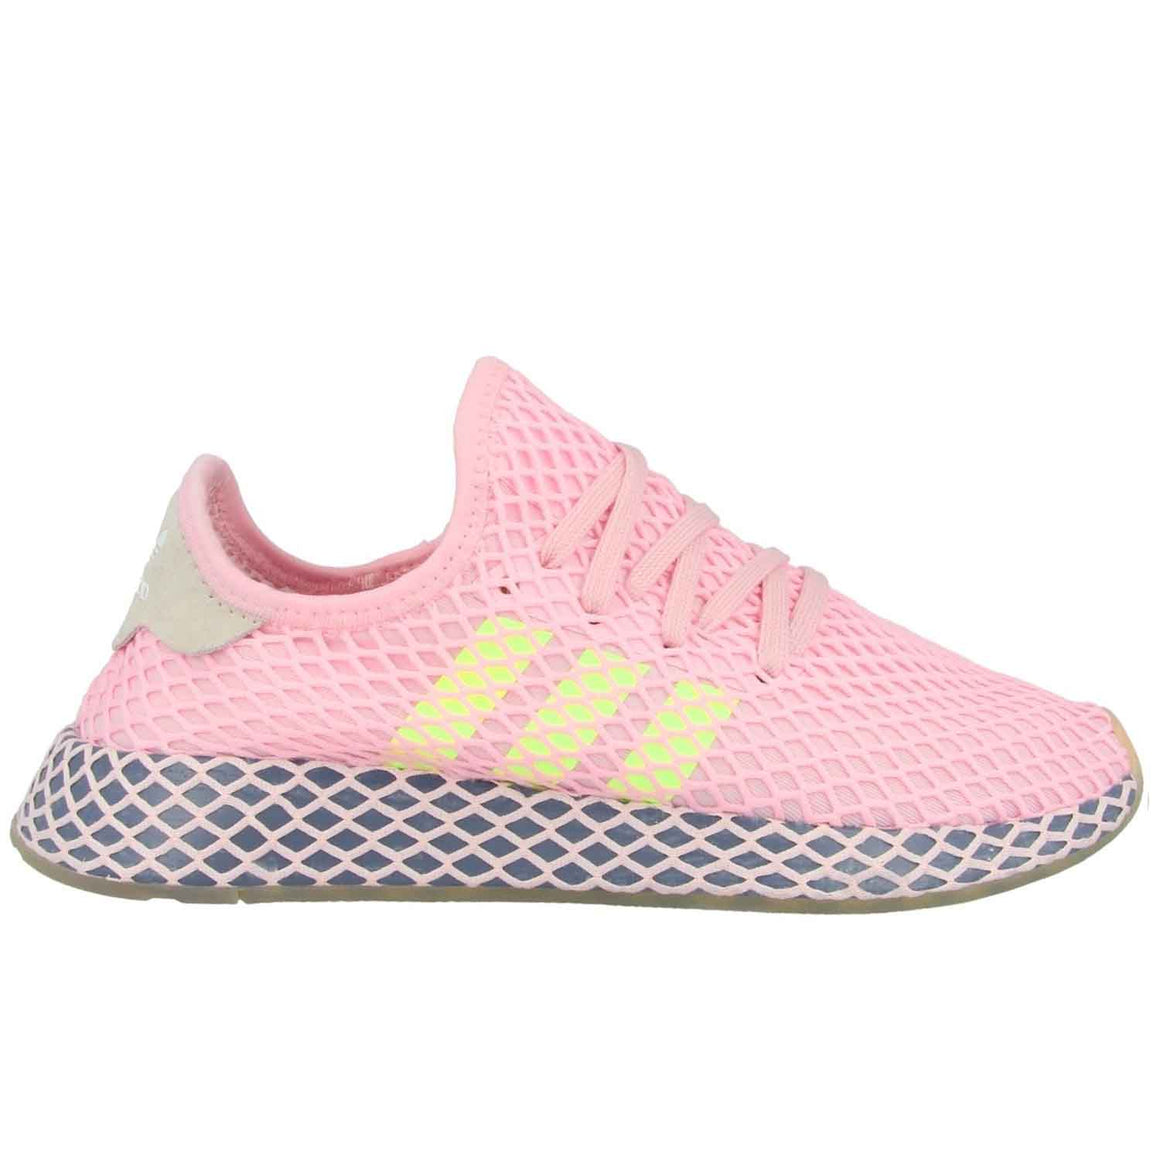 ADIDAS DEERUPT RUNNER PINK YELLOW